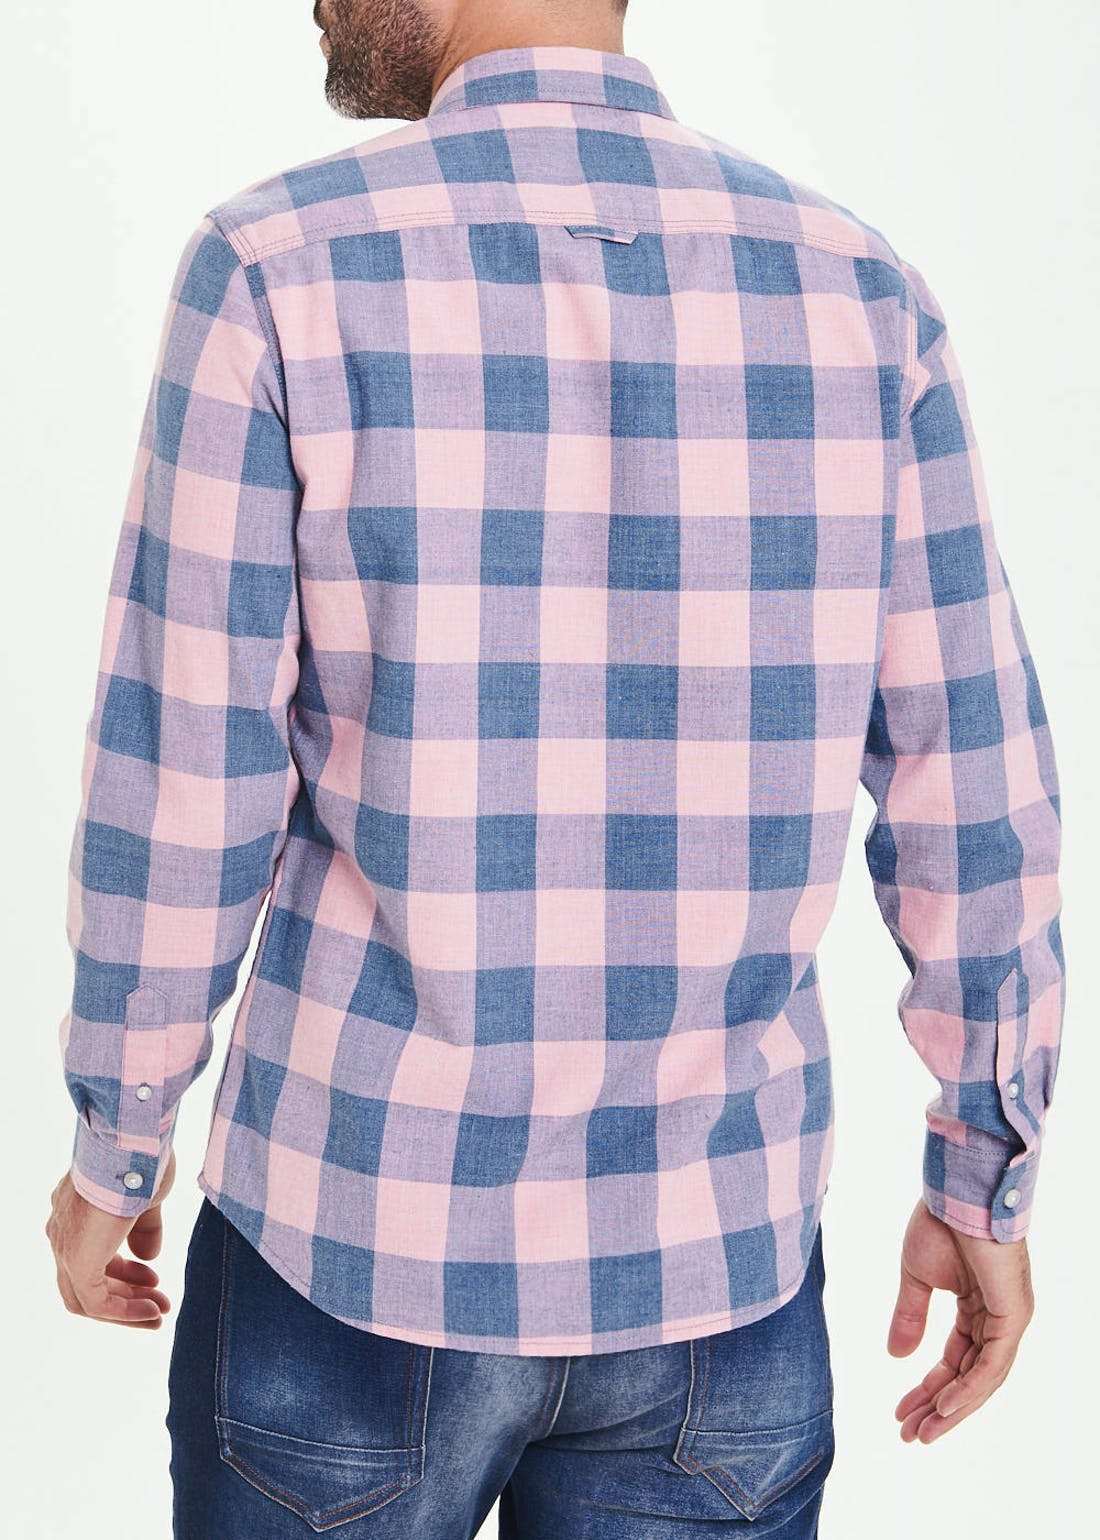 Morley Slim Fit Flannel Shirt